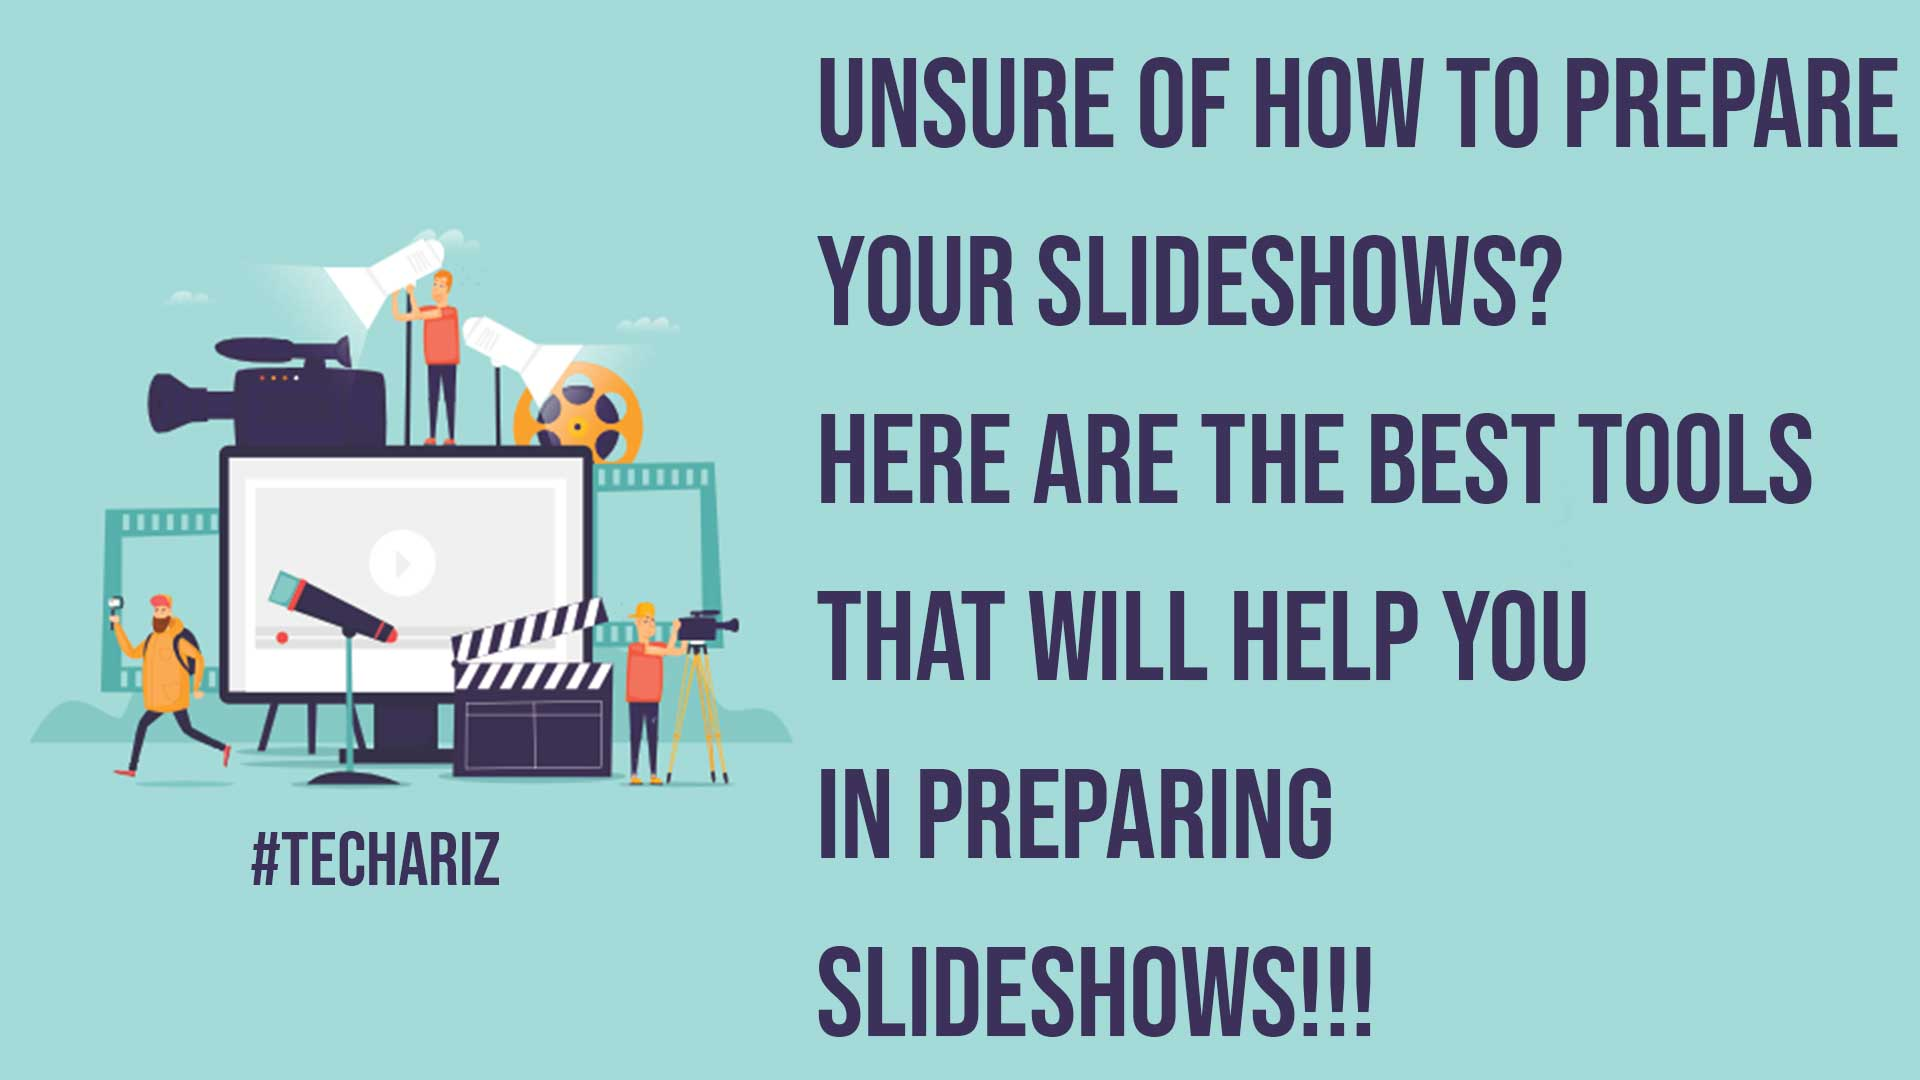 Unsure of How to Prepare Your Slideshows Here are the Best Tools That will Help You In Preparing Slideshows